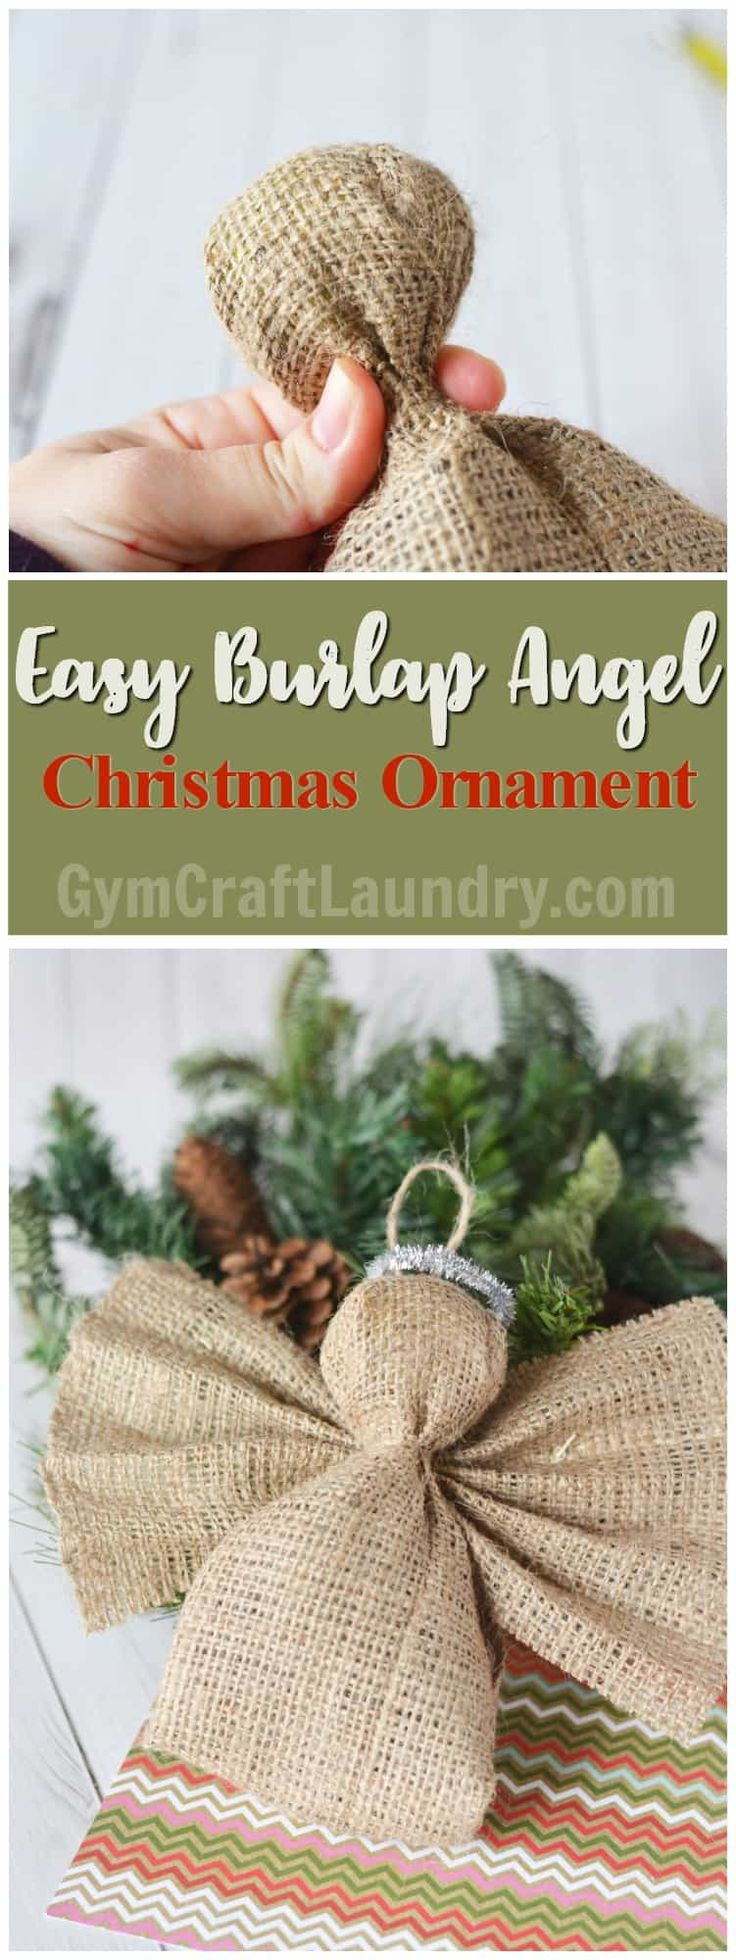 This easy Christmas craft is a perfect project for the whole family. Make these adorable burlap angel ornaments for a simple yet stylish Christmas tree look. via @herchel1